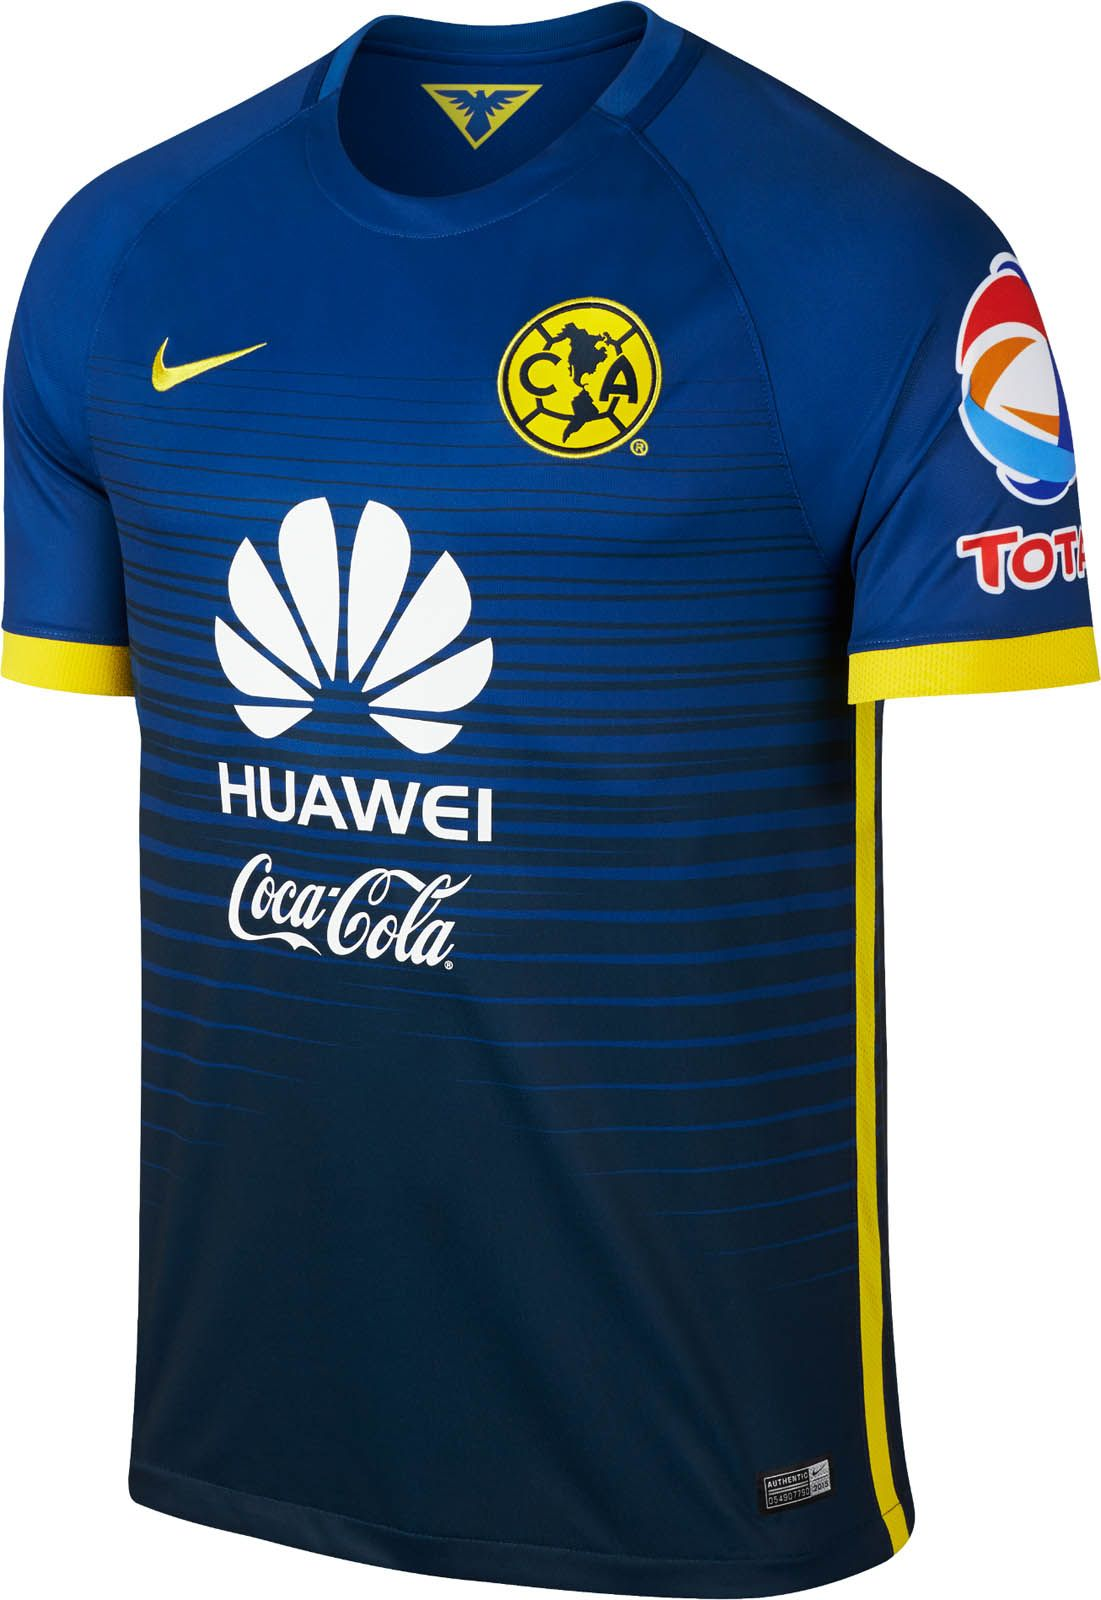 Club de Fútbol América (Mexico) - 2015 2016 Nike Away Shirt ... 0222e8c64d54c